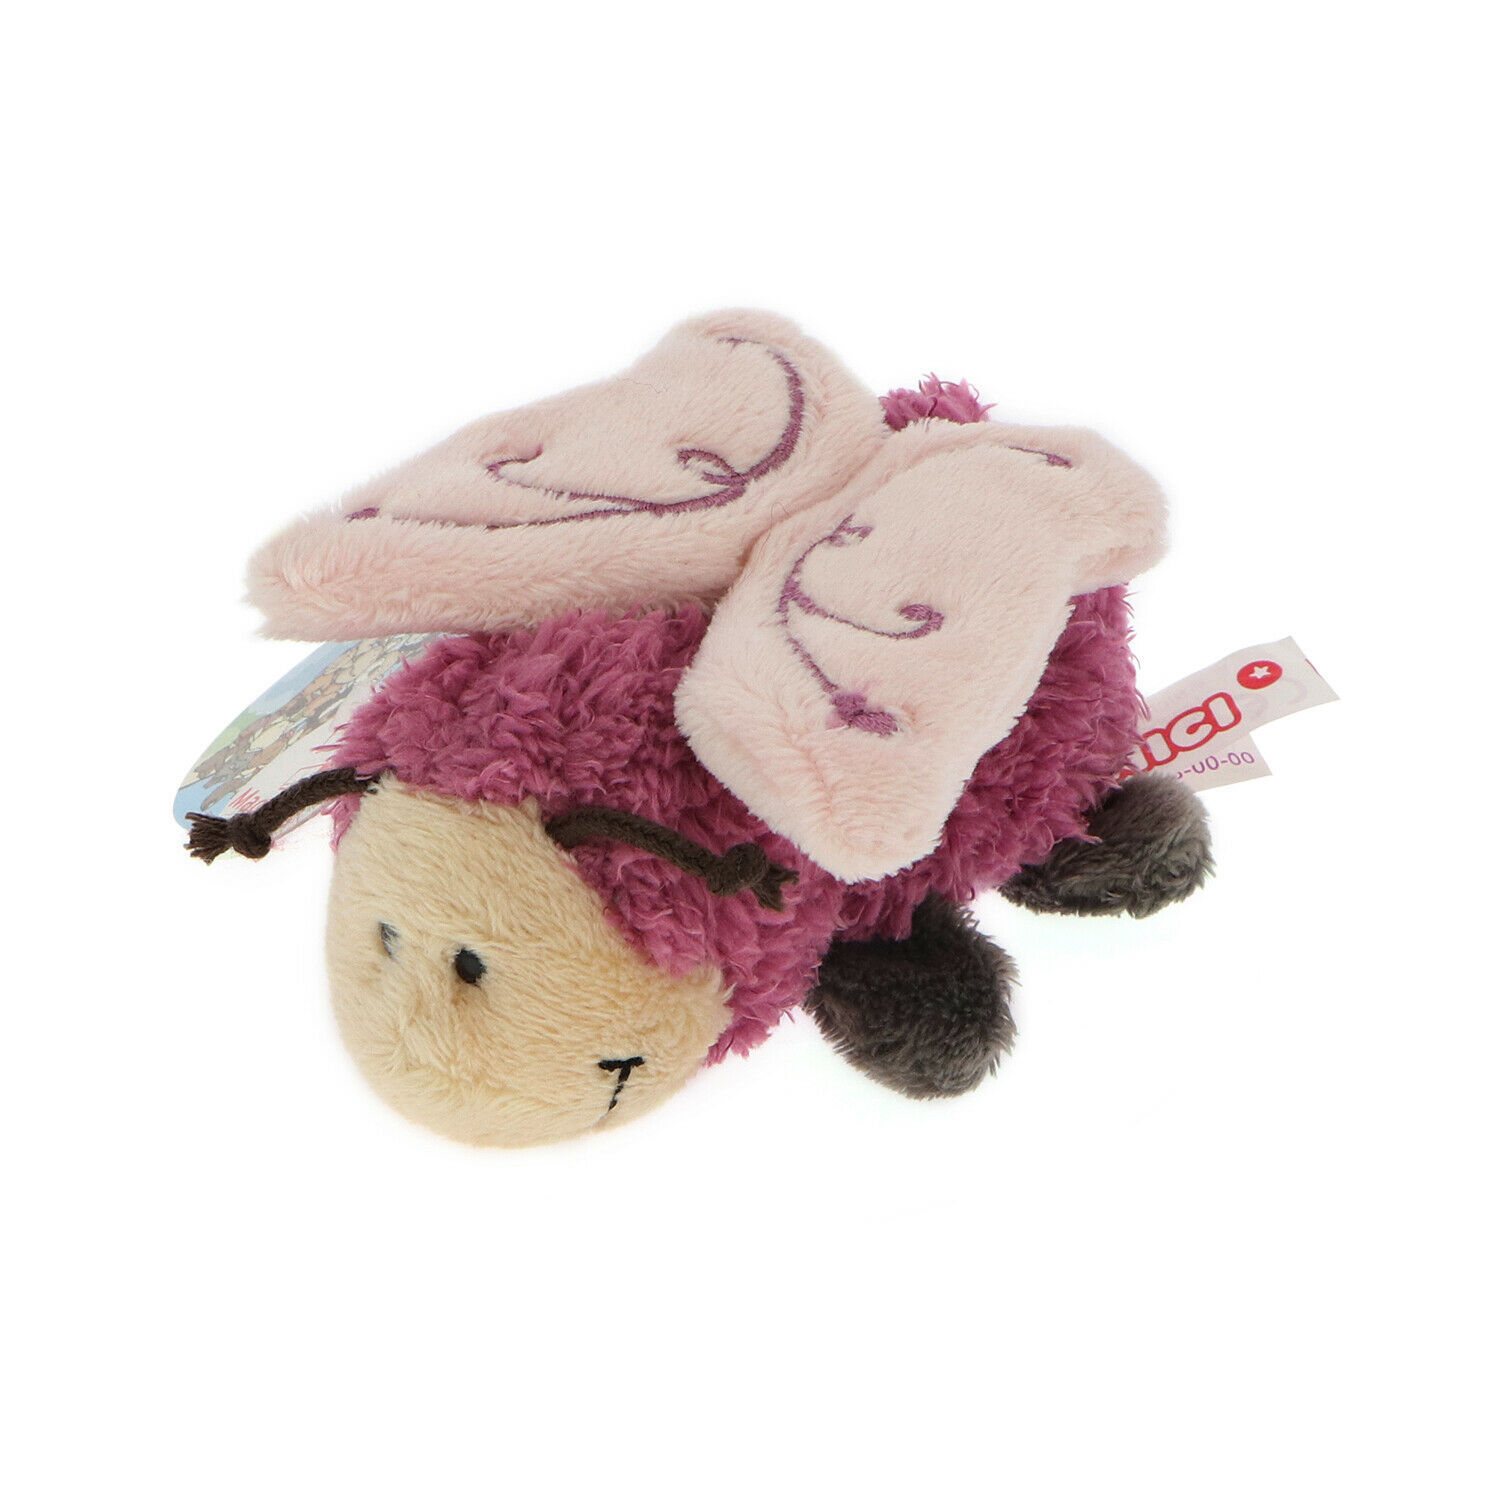 Primary image for MagNICI Butterfly Fuchsia Pink Wing Stuffed Toy Animal Magnet in Paws 5 inches